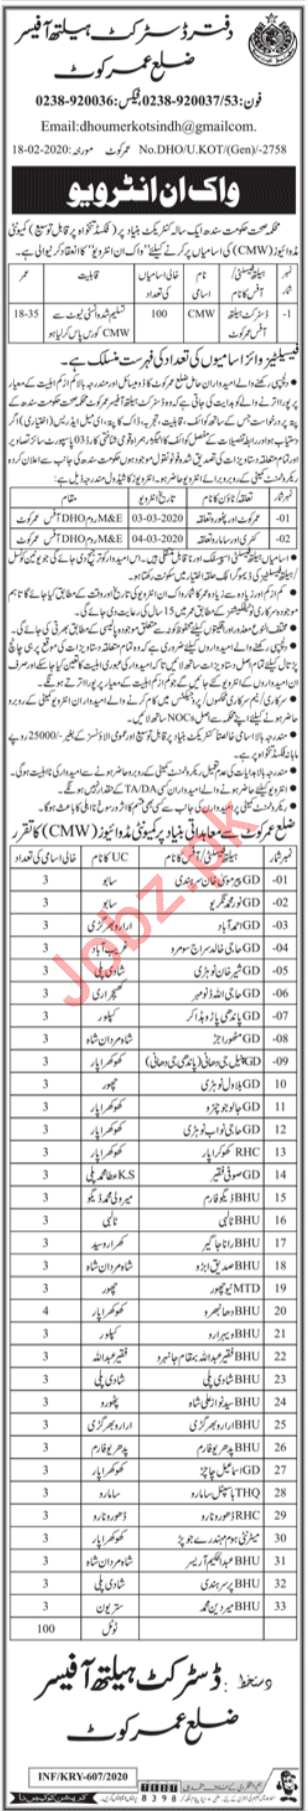 District Health Office Umarkot Jobs 2020 for CMWs